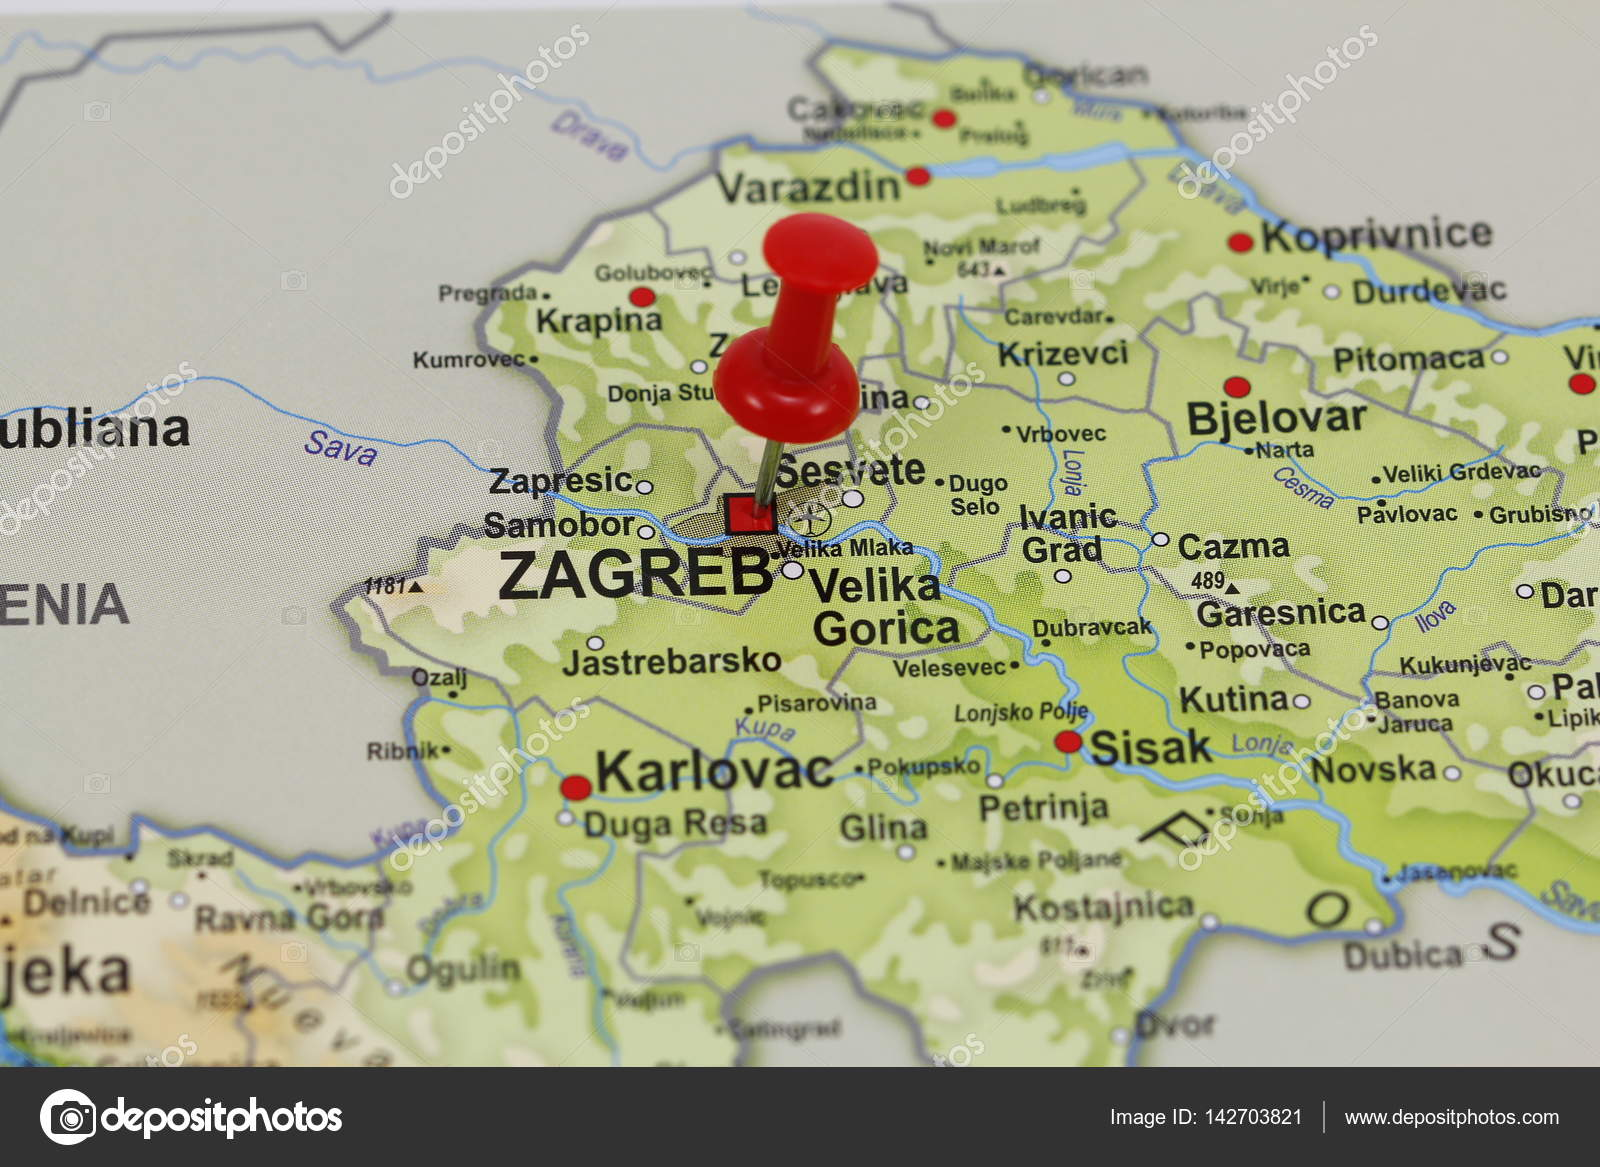 Zagreb Pin In A Map Stock Photo C Agafapaperiapunta Hotmail Es